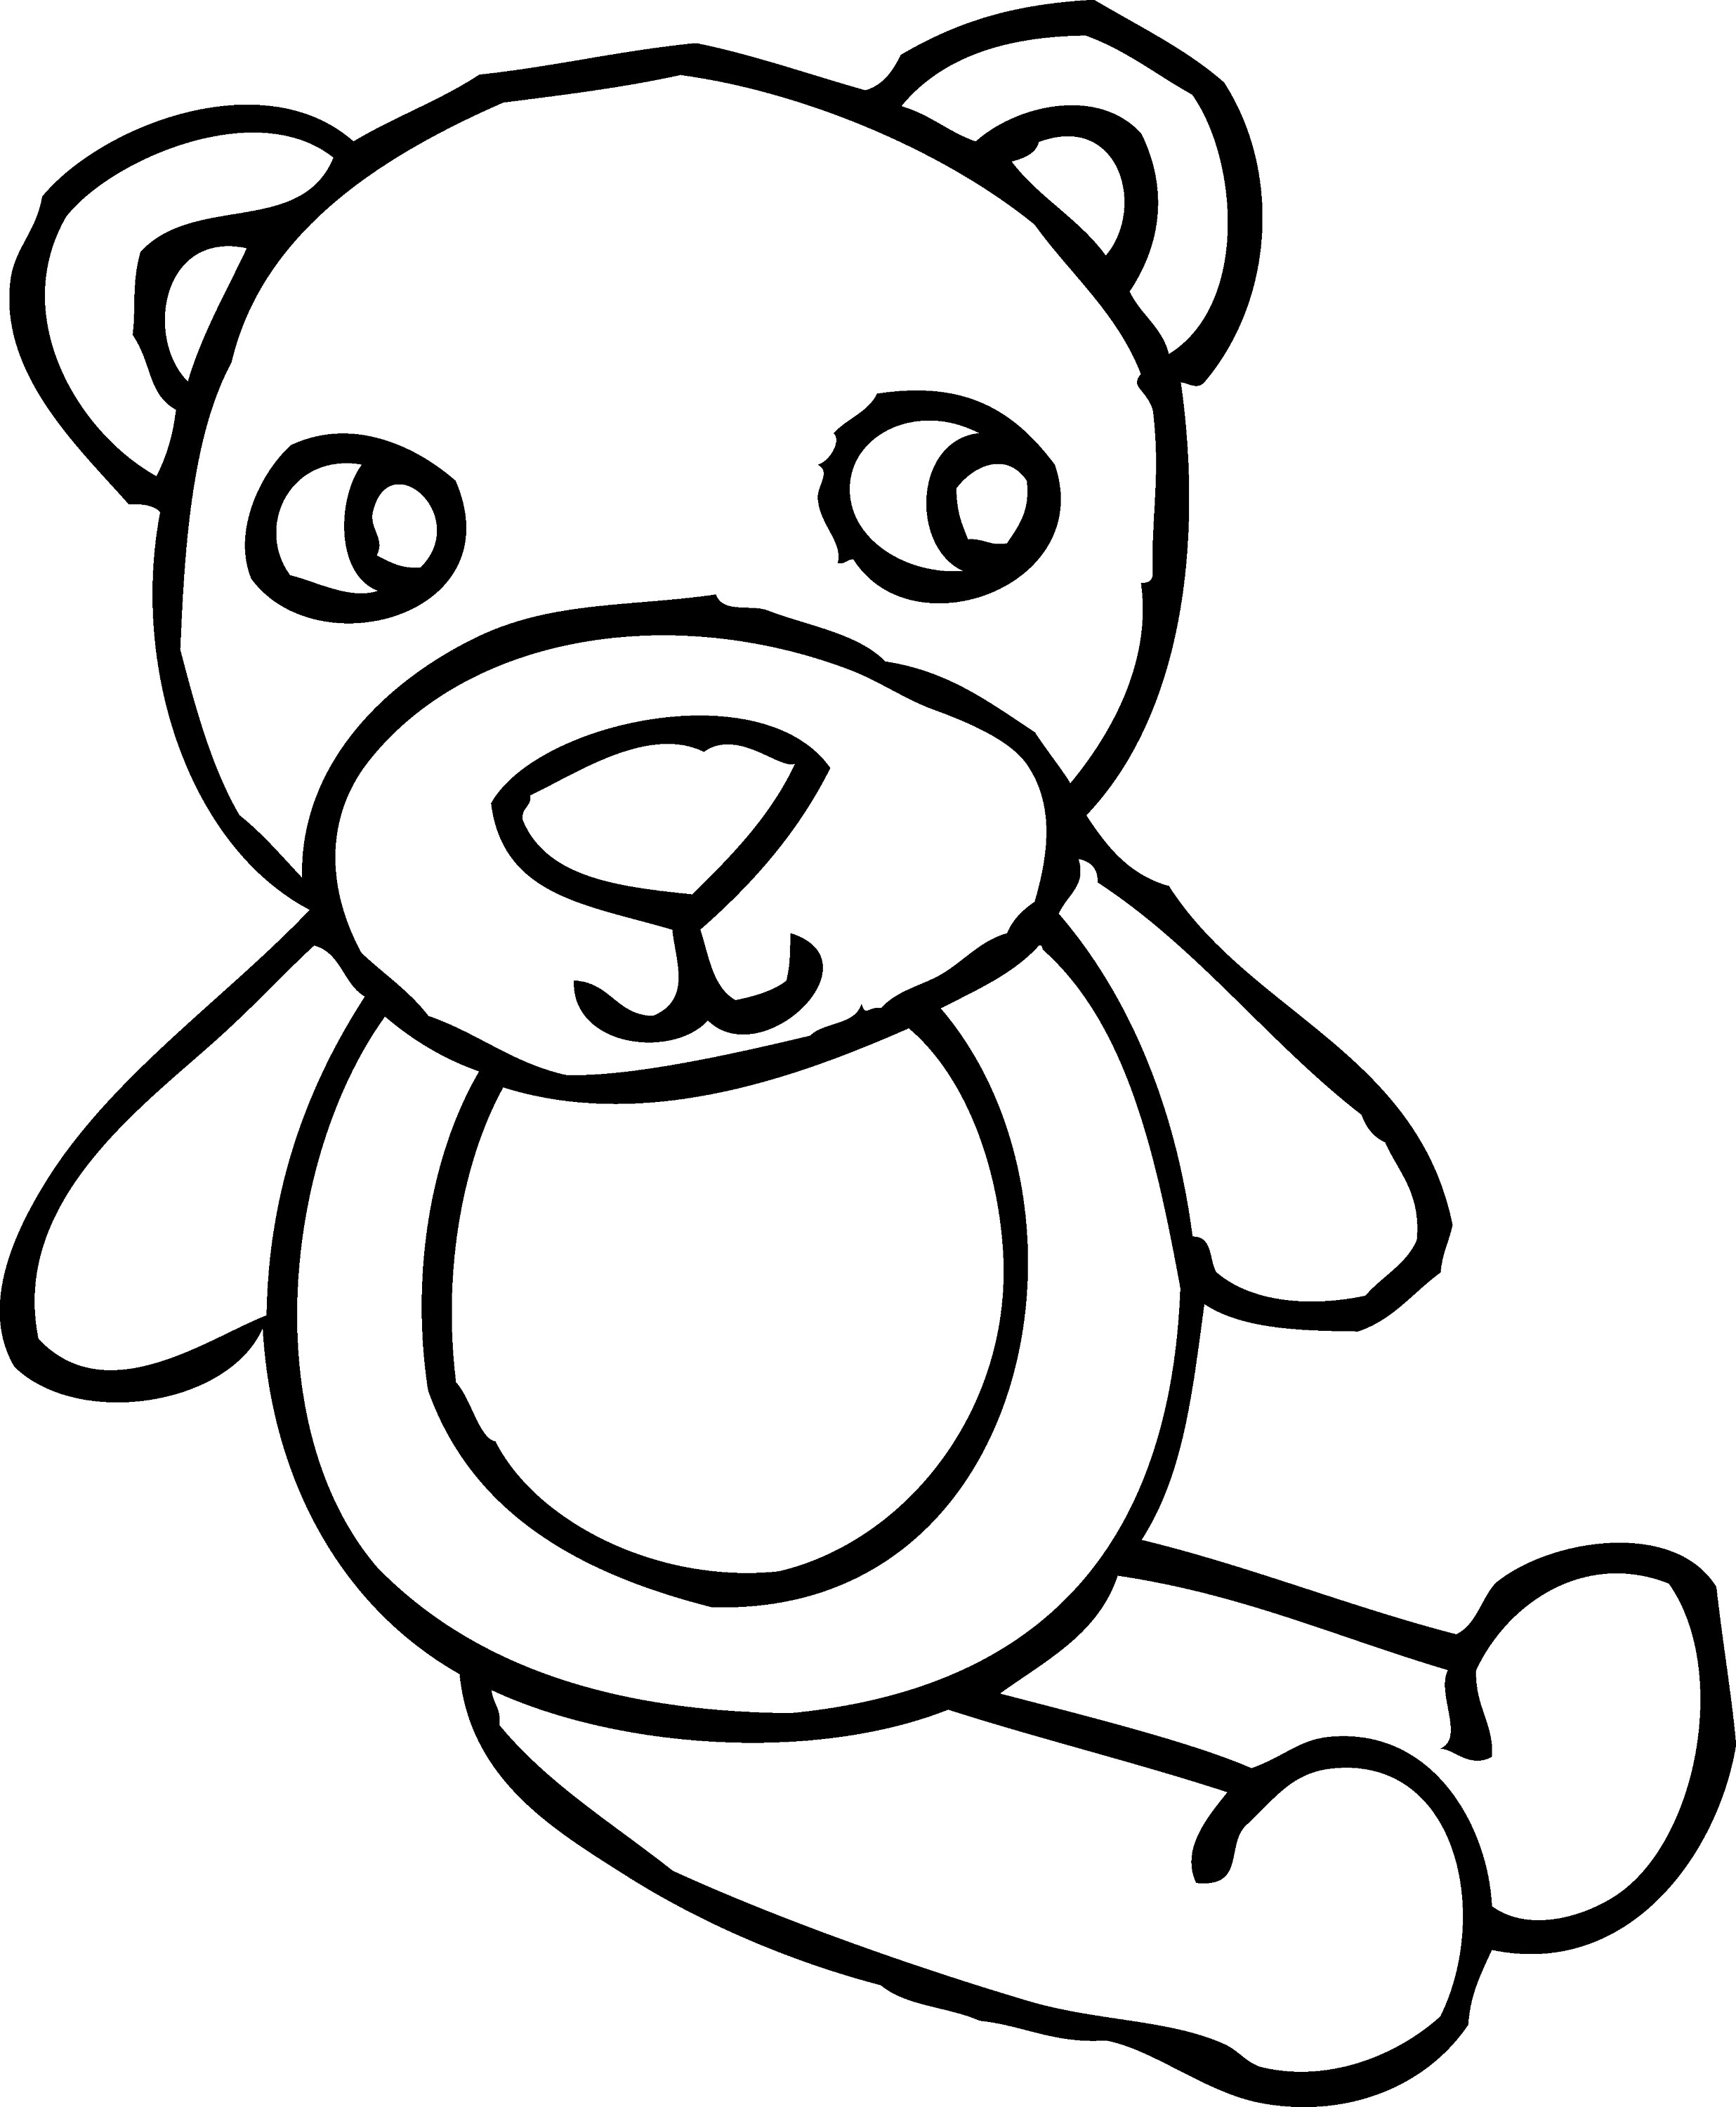 Teddy Bear Toy Coloring Page - Free Clip Art